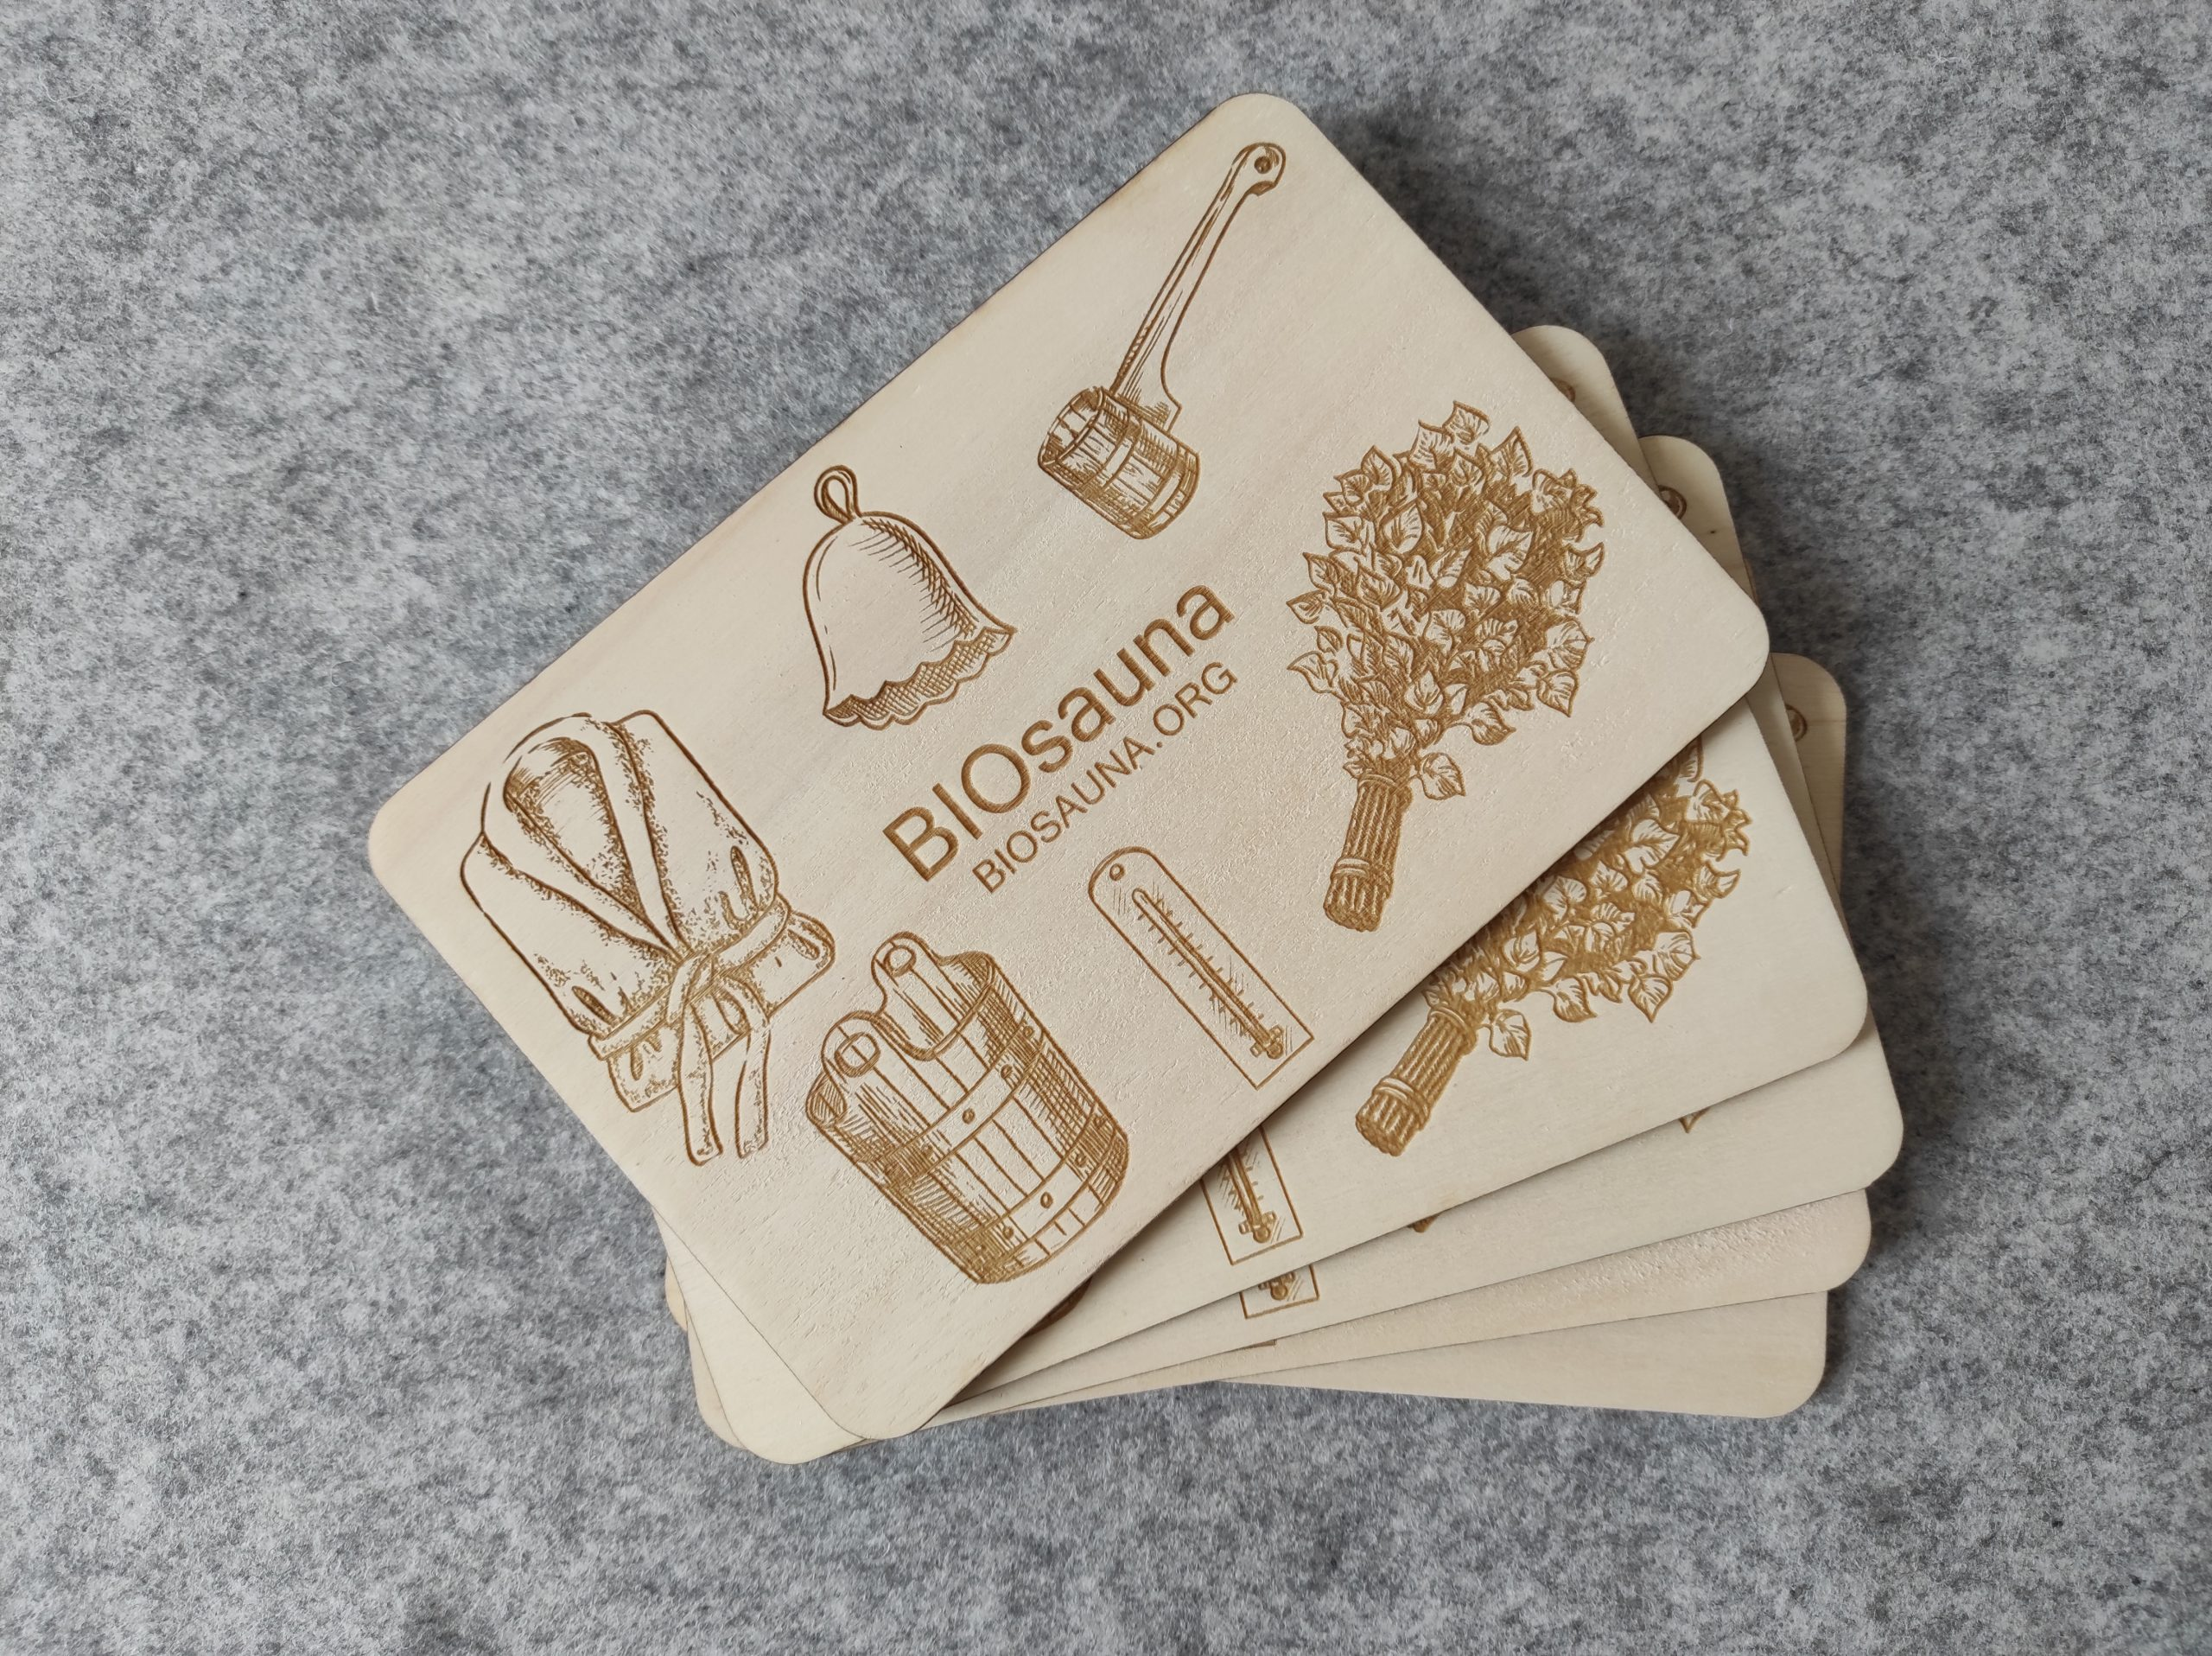 Wooden plates with business credentials